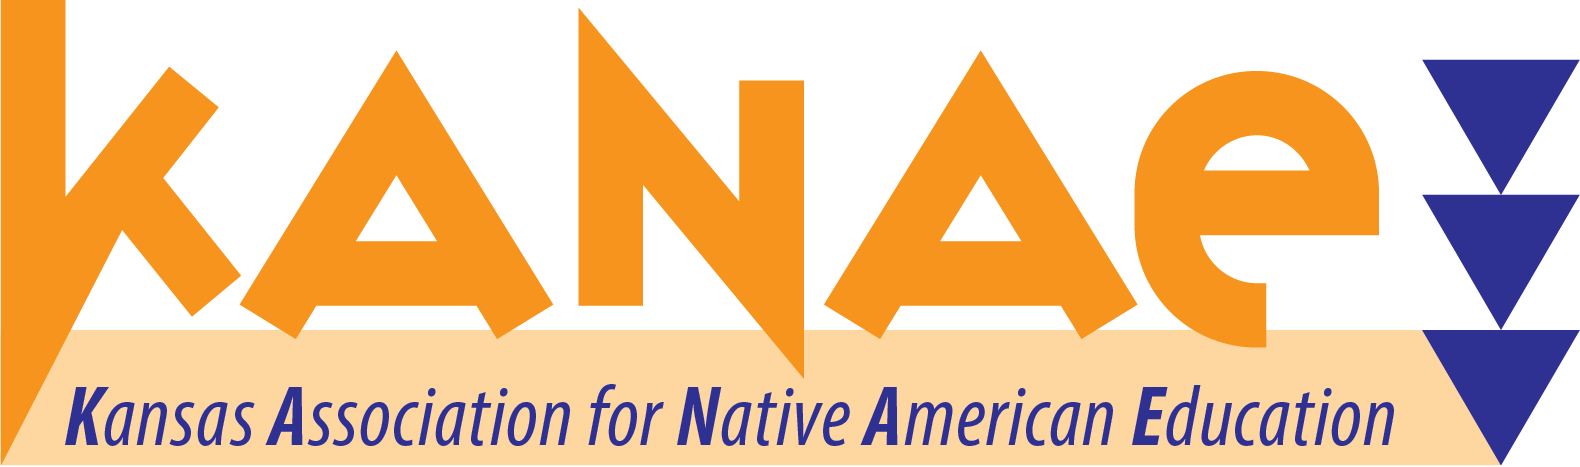 Kansas Association for Native American Education logo